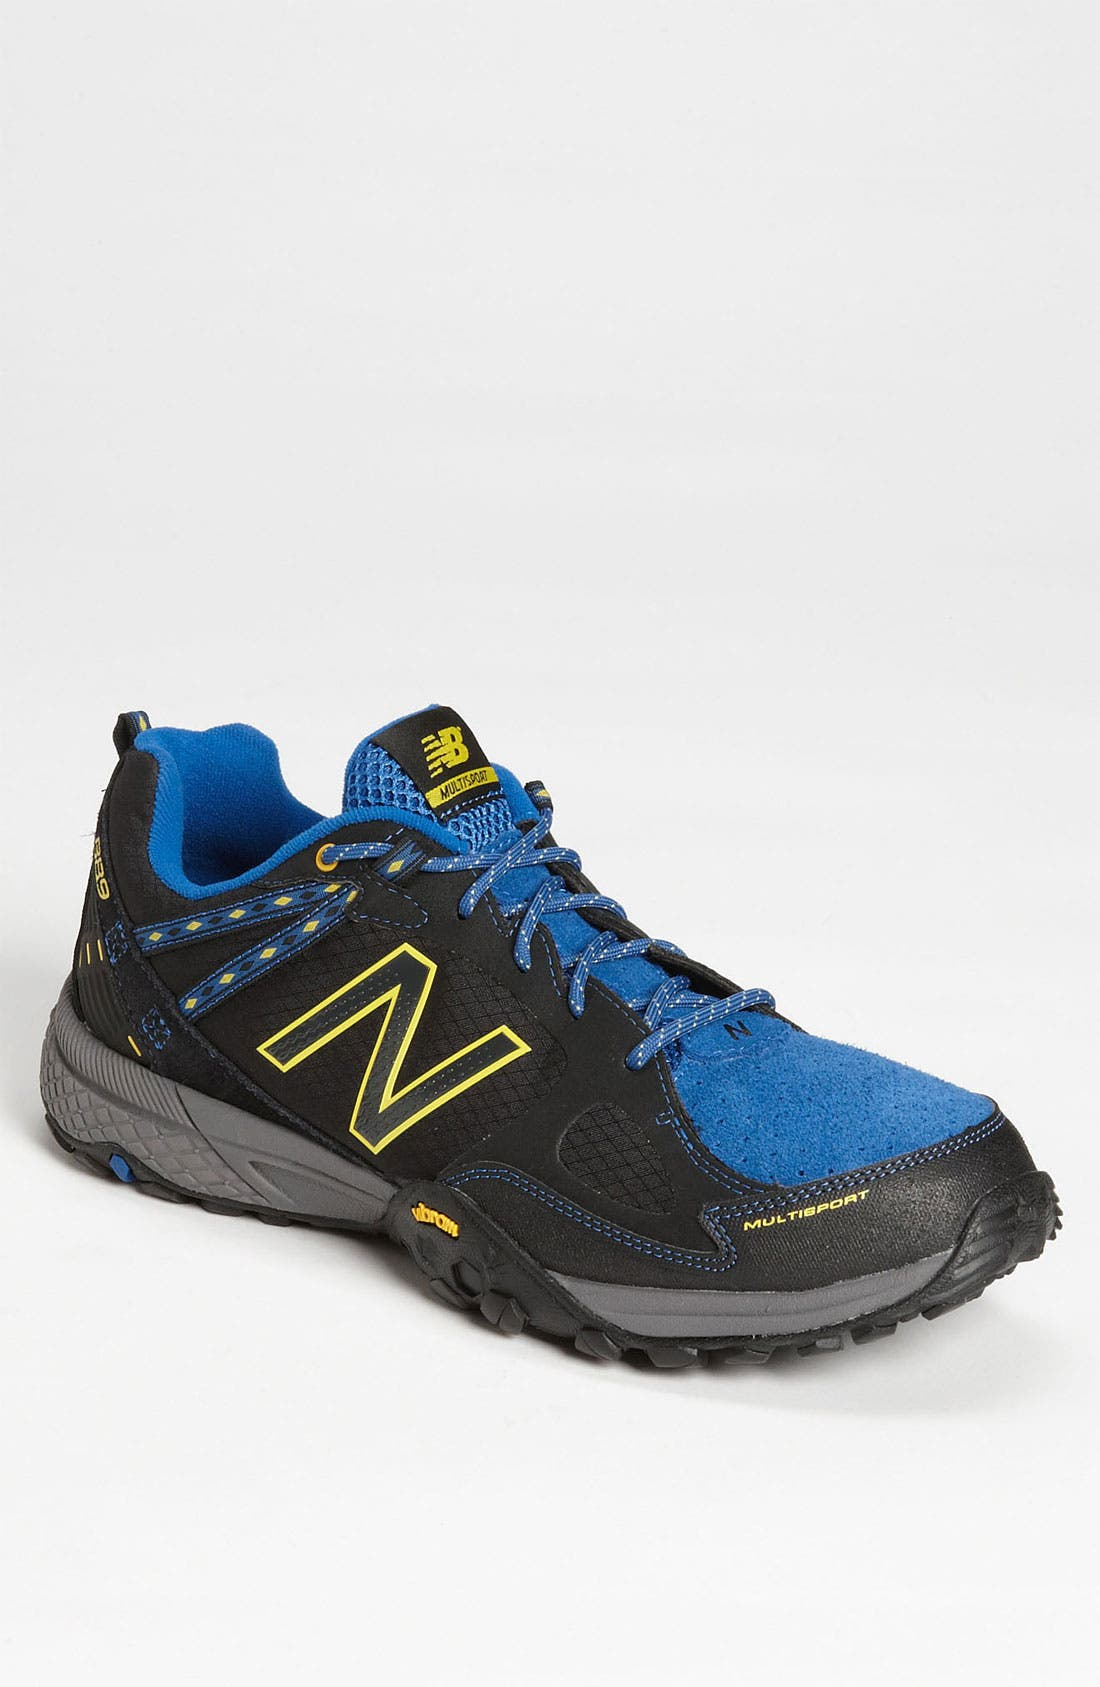 Main Image - New Balance '889' Trail Running Shoe (Men)